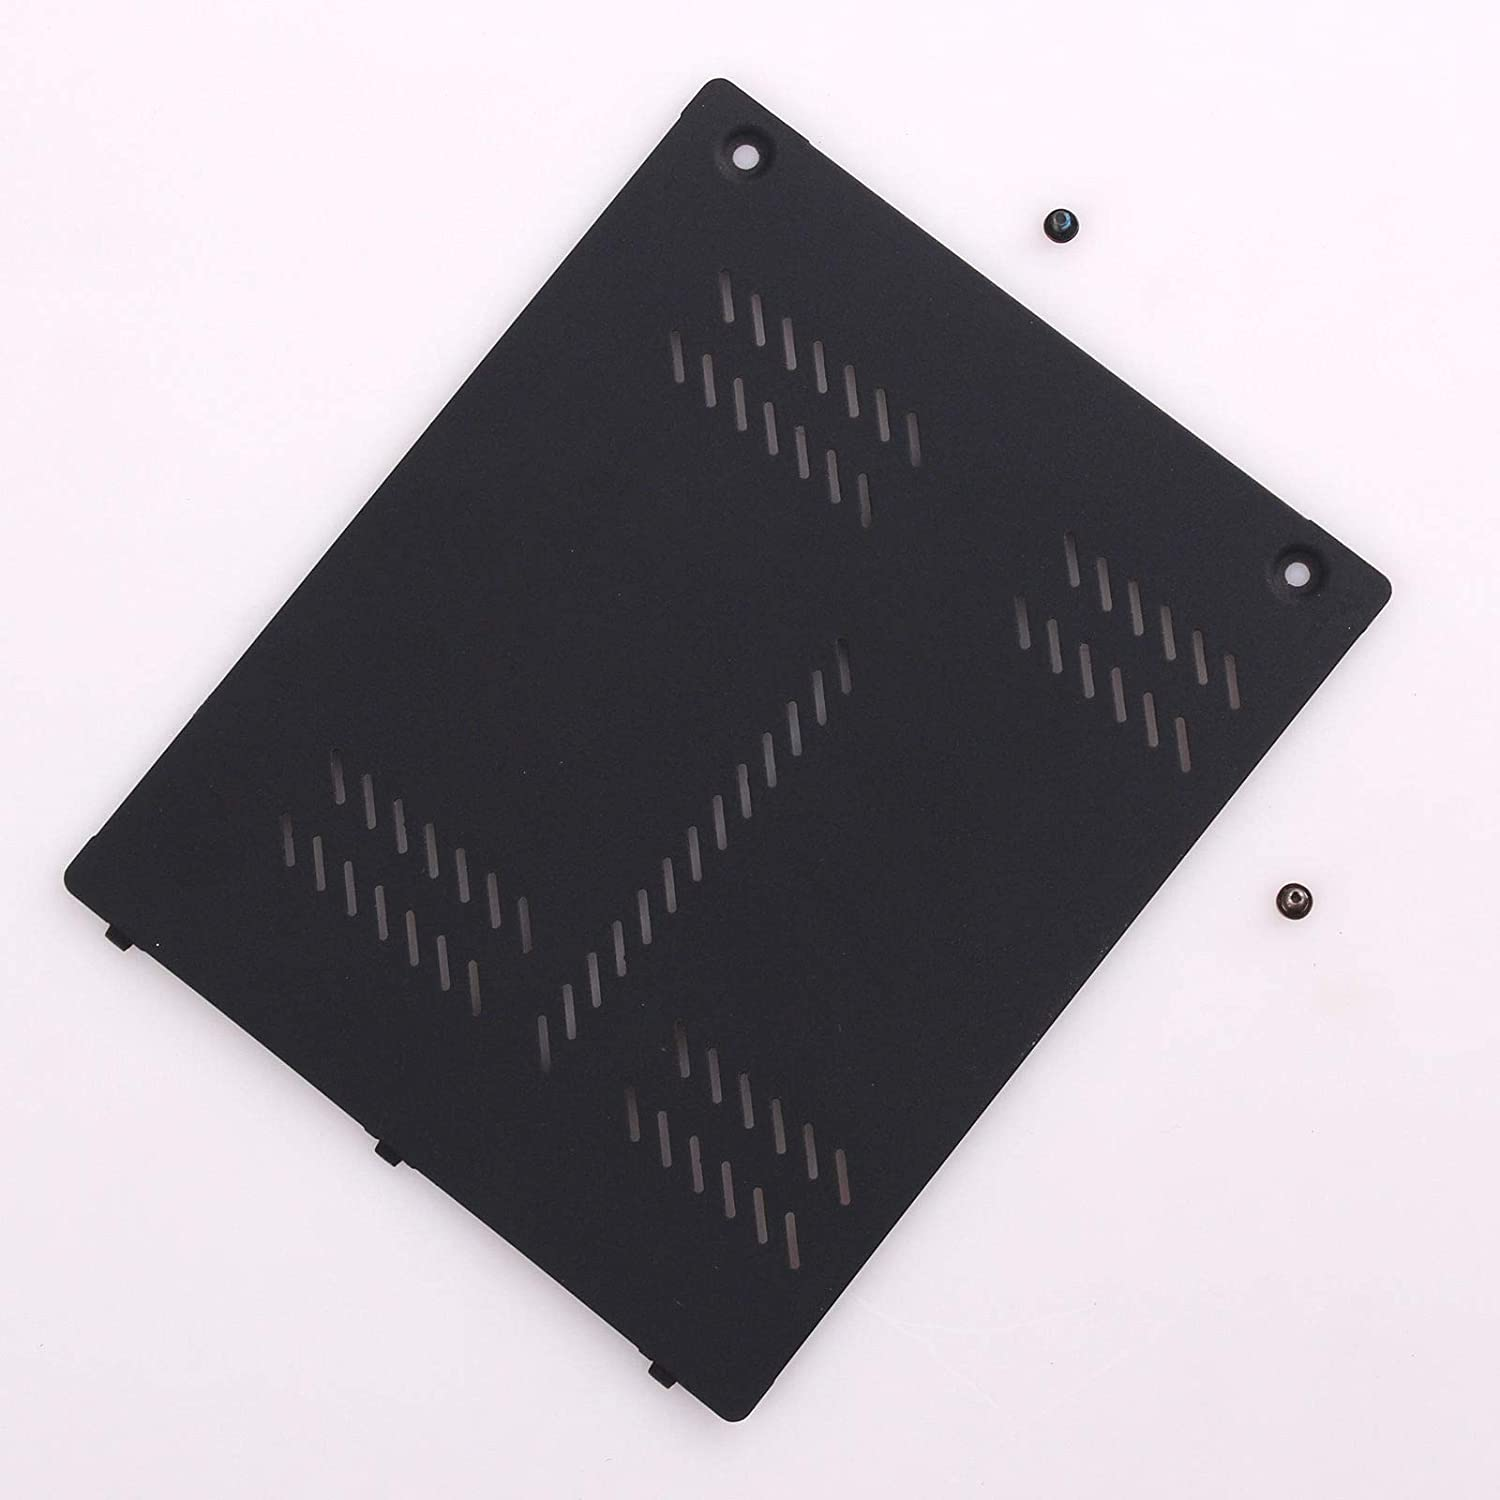 Replacement Memory RAM Cover Door with Screw for IBM Lenovo Thinkpad T420S T430S